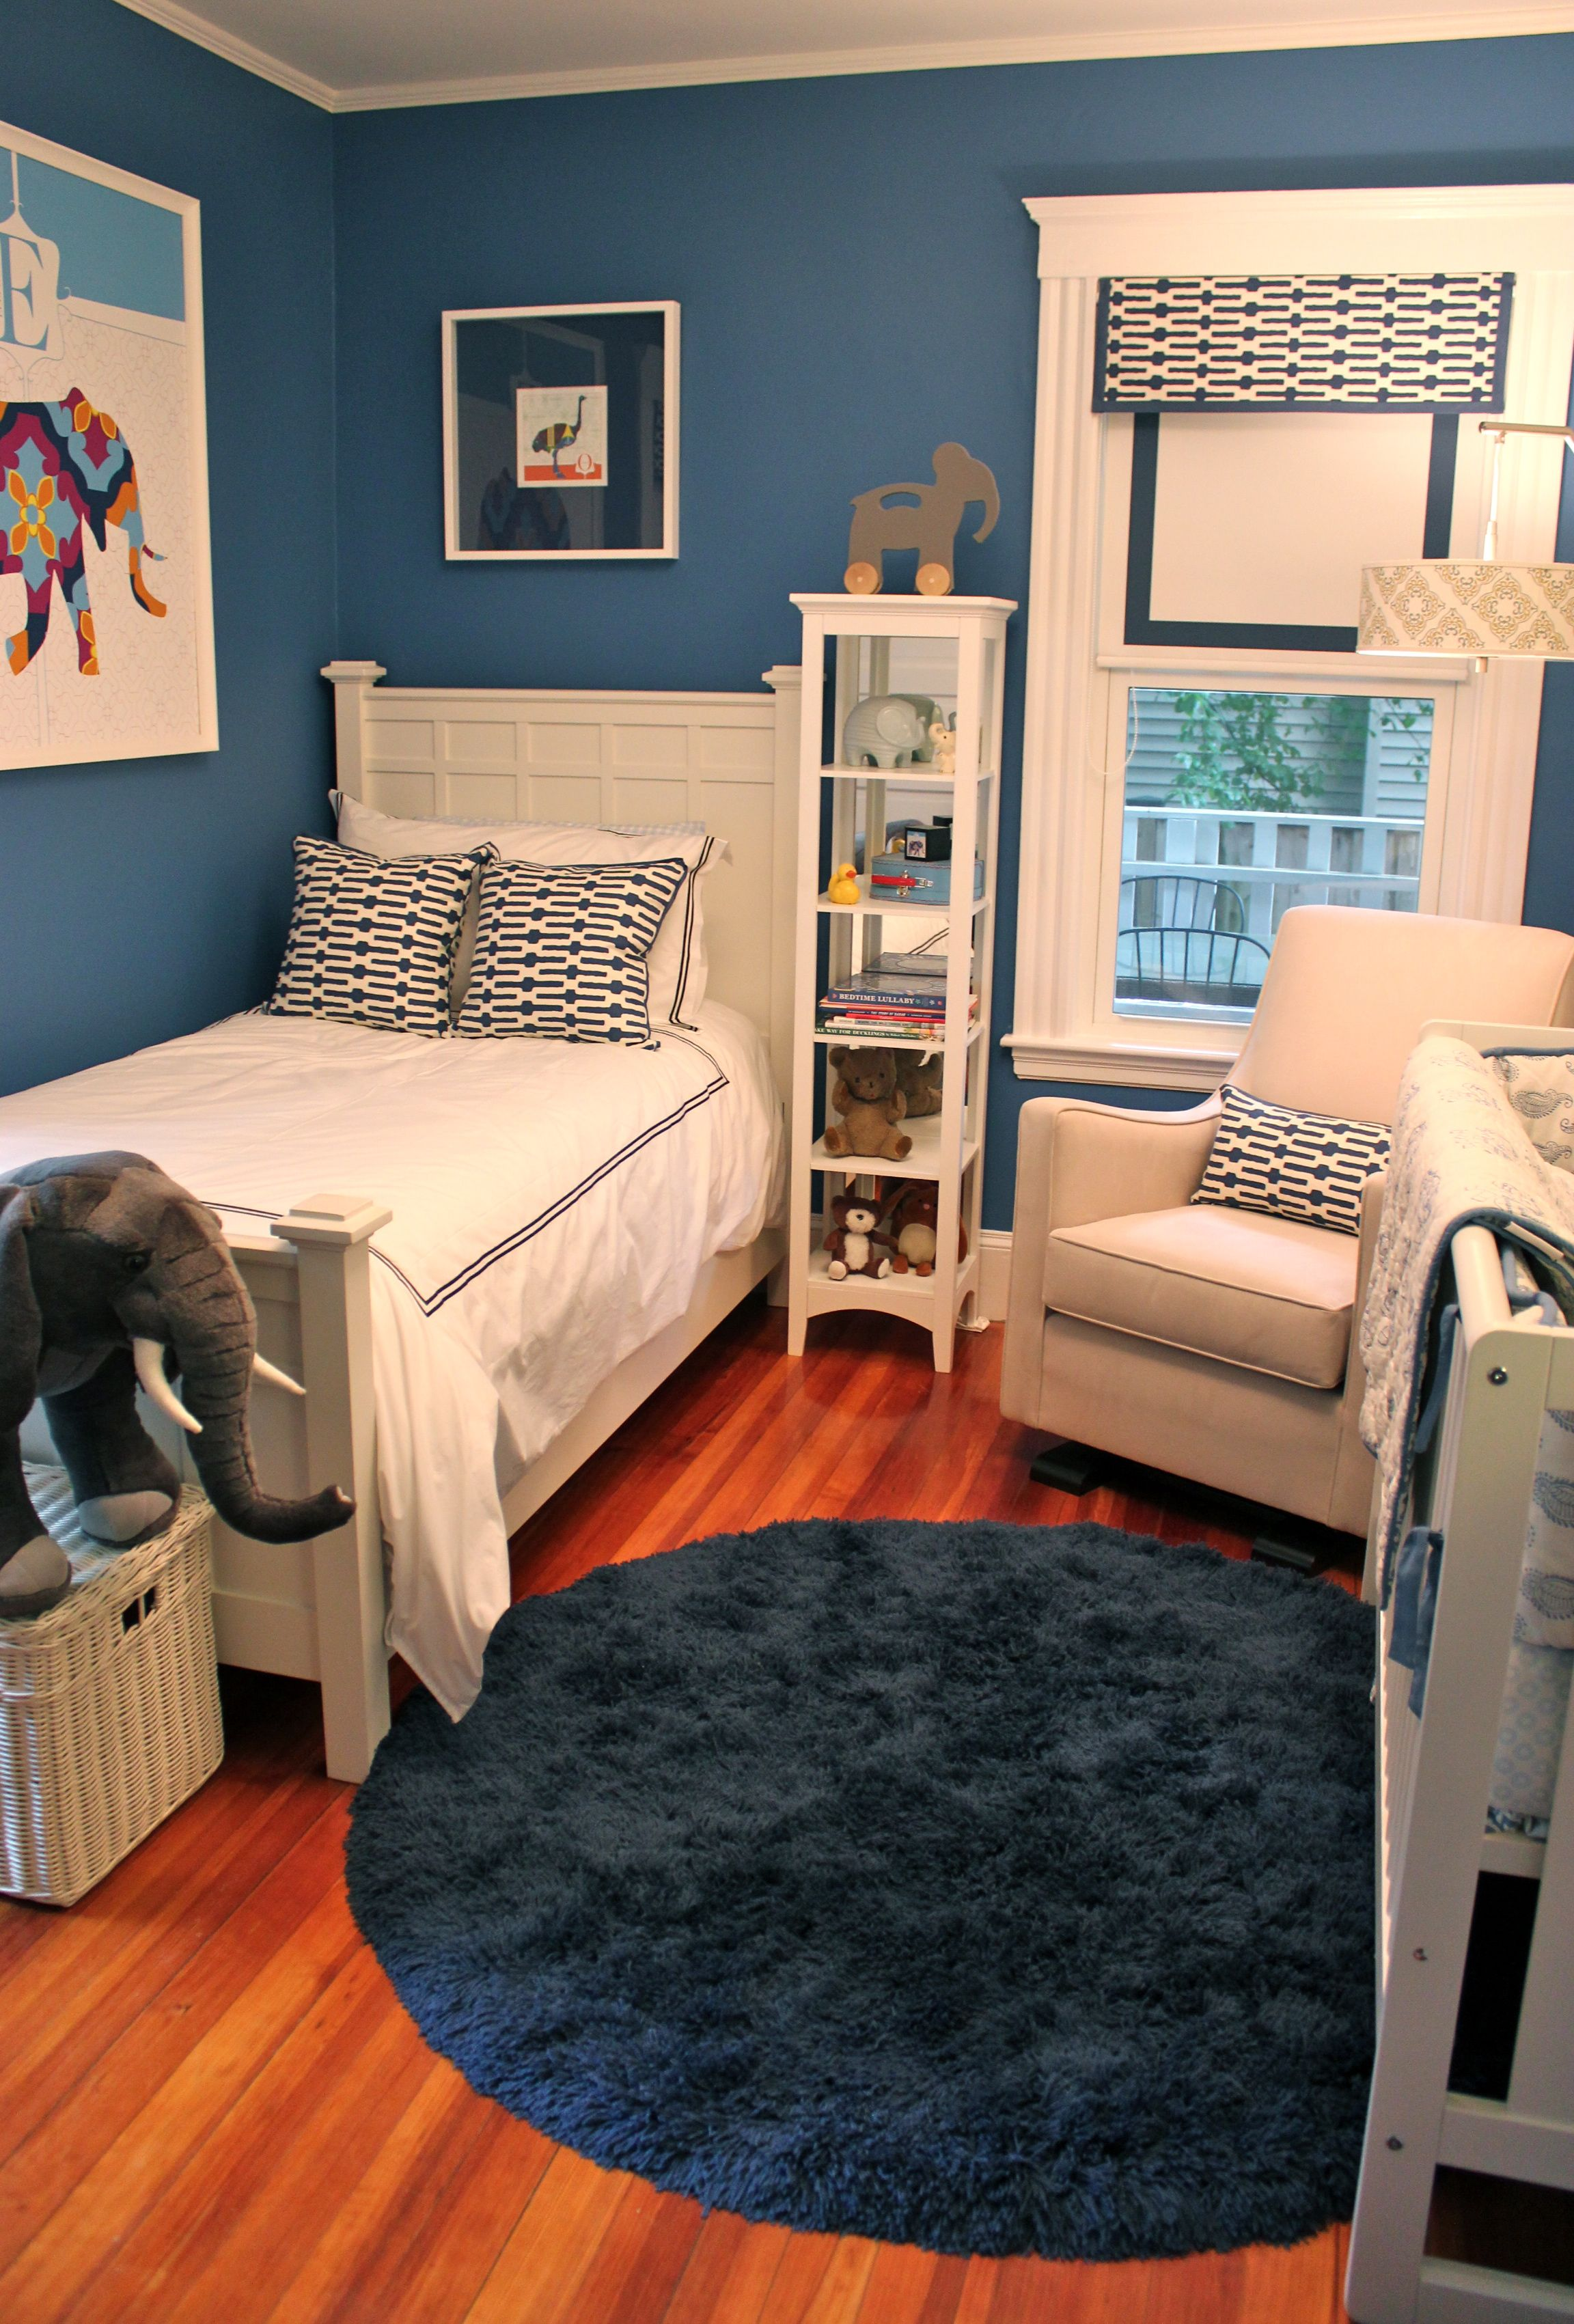 shared bedroom for the